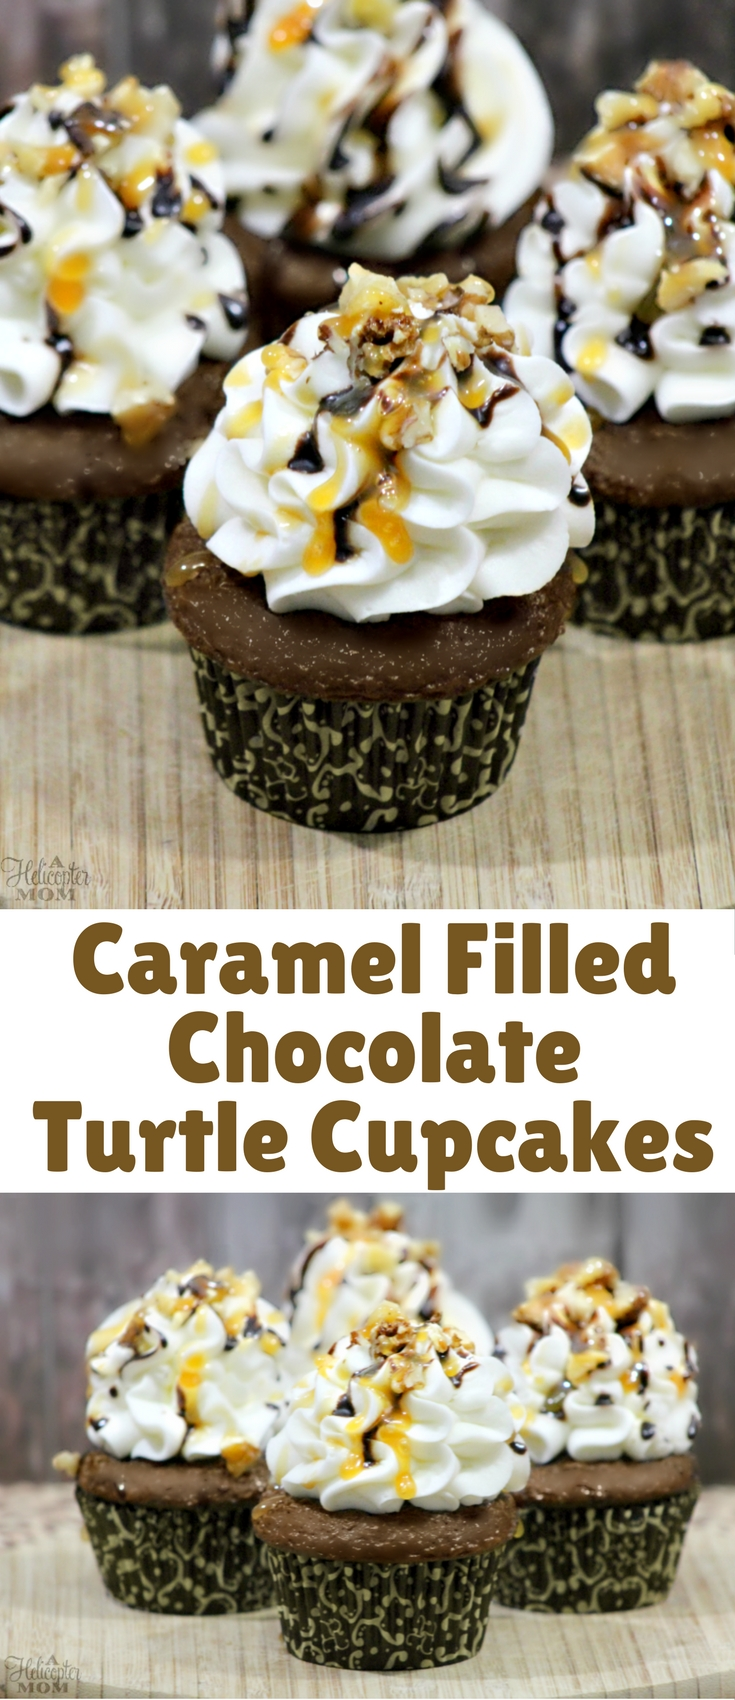 These cupcakes are to die for! A rich chocolaty cupcake stuffed with caramel, then topped with a buttercream frosting. Next, hot fudge and caramel sauce is drizzled over the top and pecans are added for the final touch.